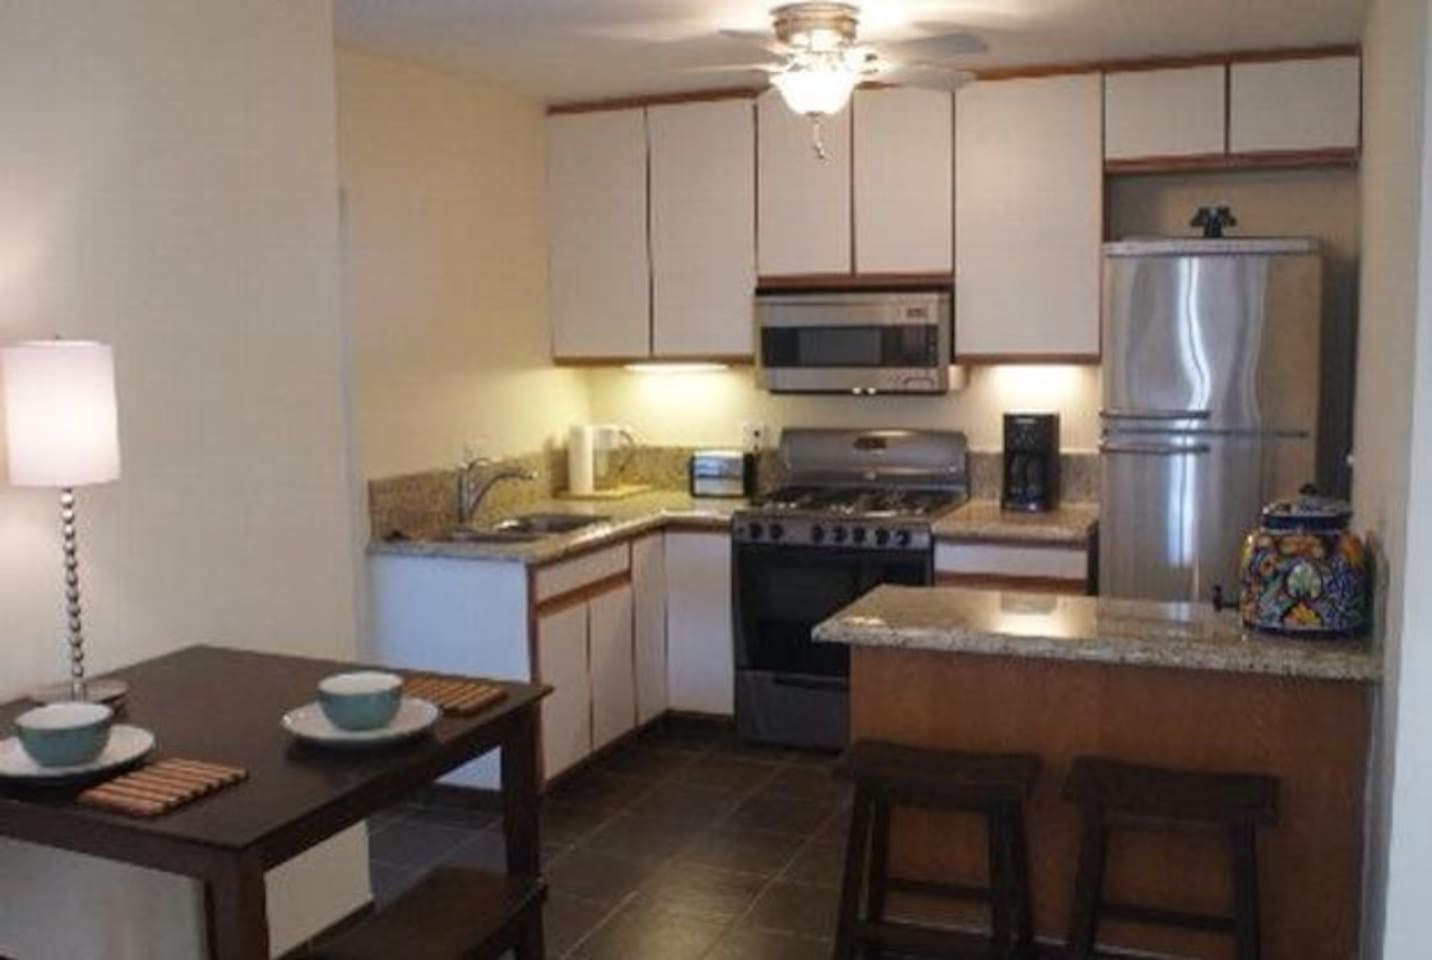 Fully equipped kitchen, breakfast bar and dining area with access to washer, dryer and roof access on the service porch.